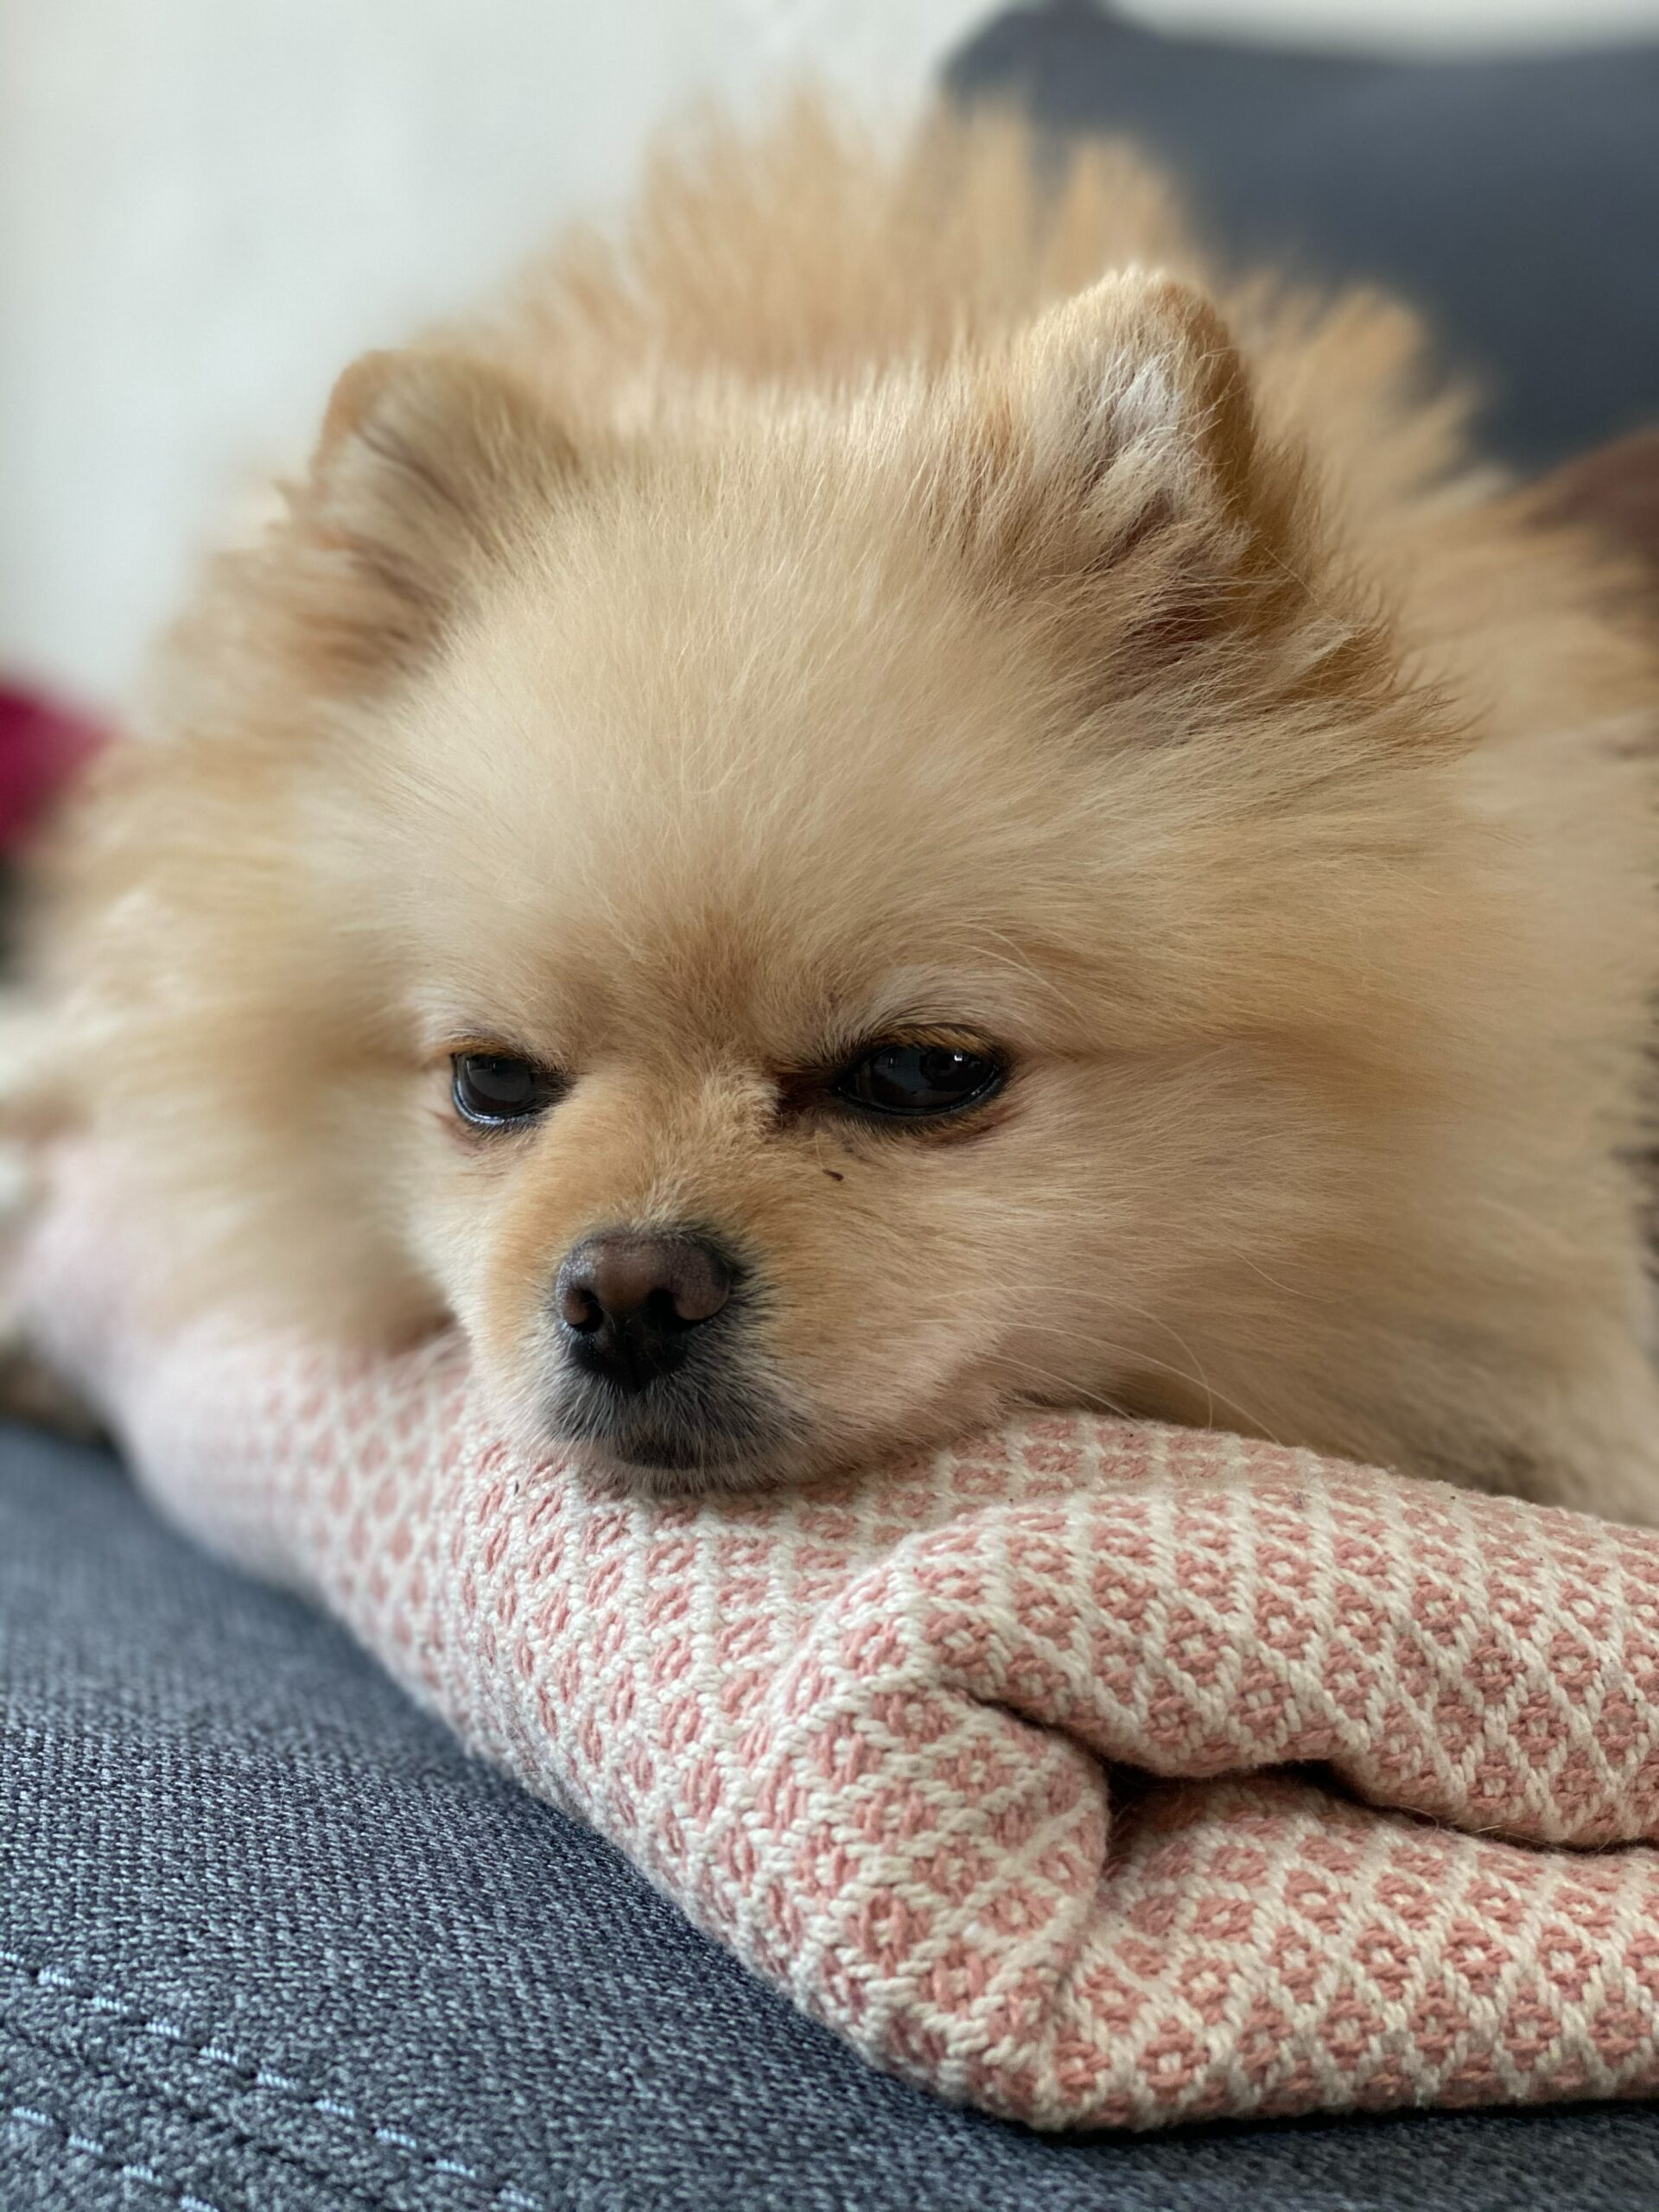 Signs Of Poor Health To Watch For As A Pet Owner